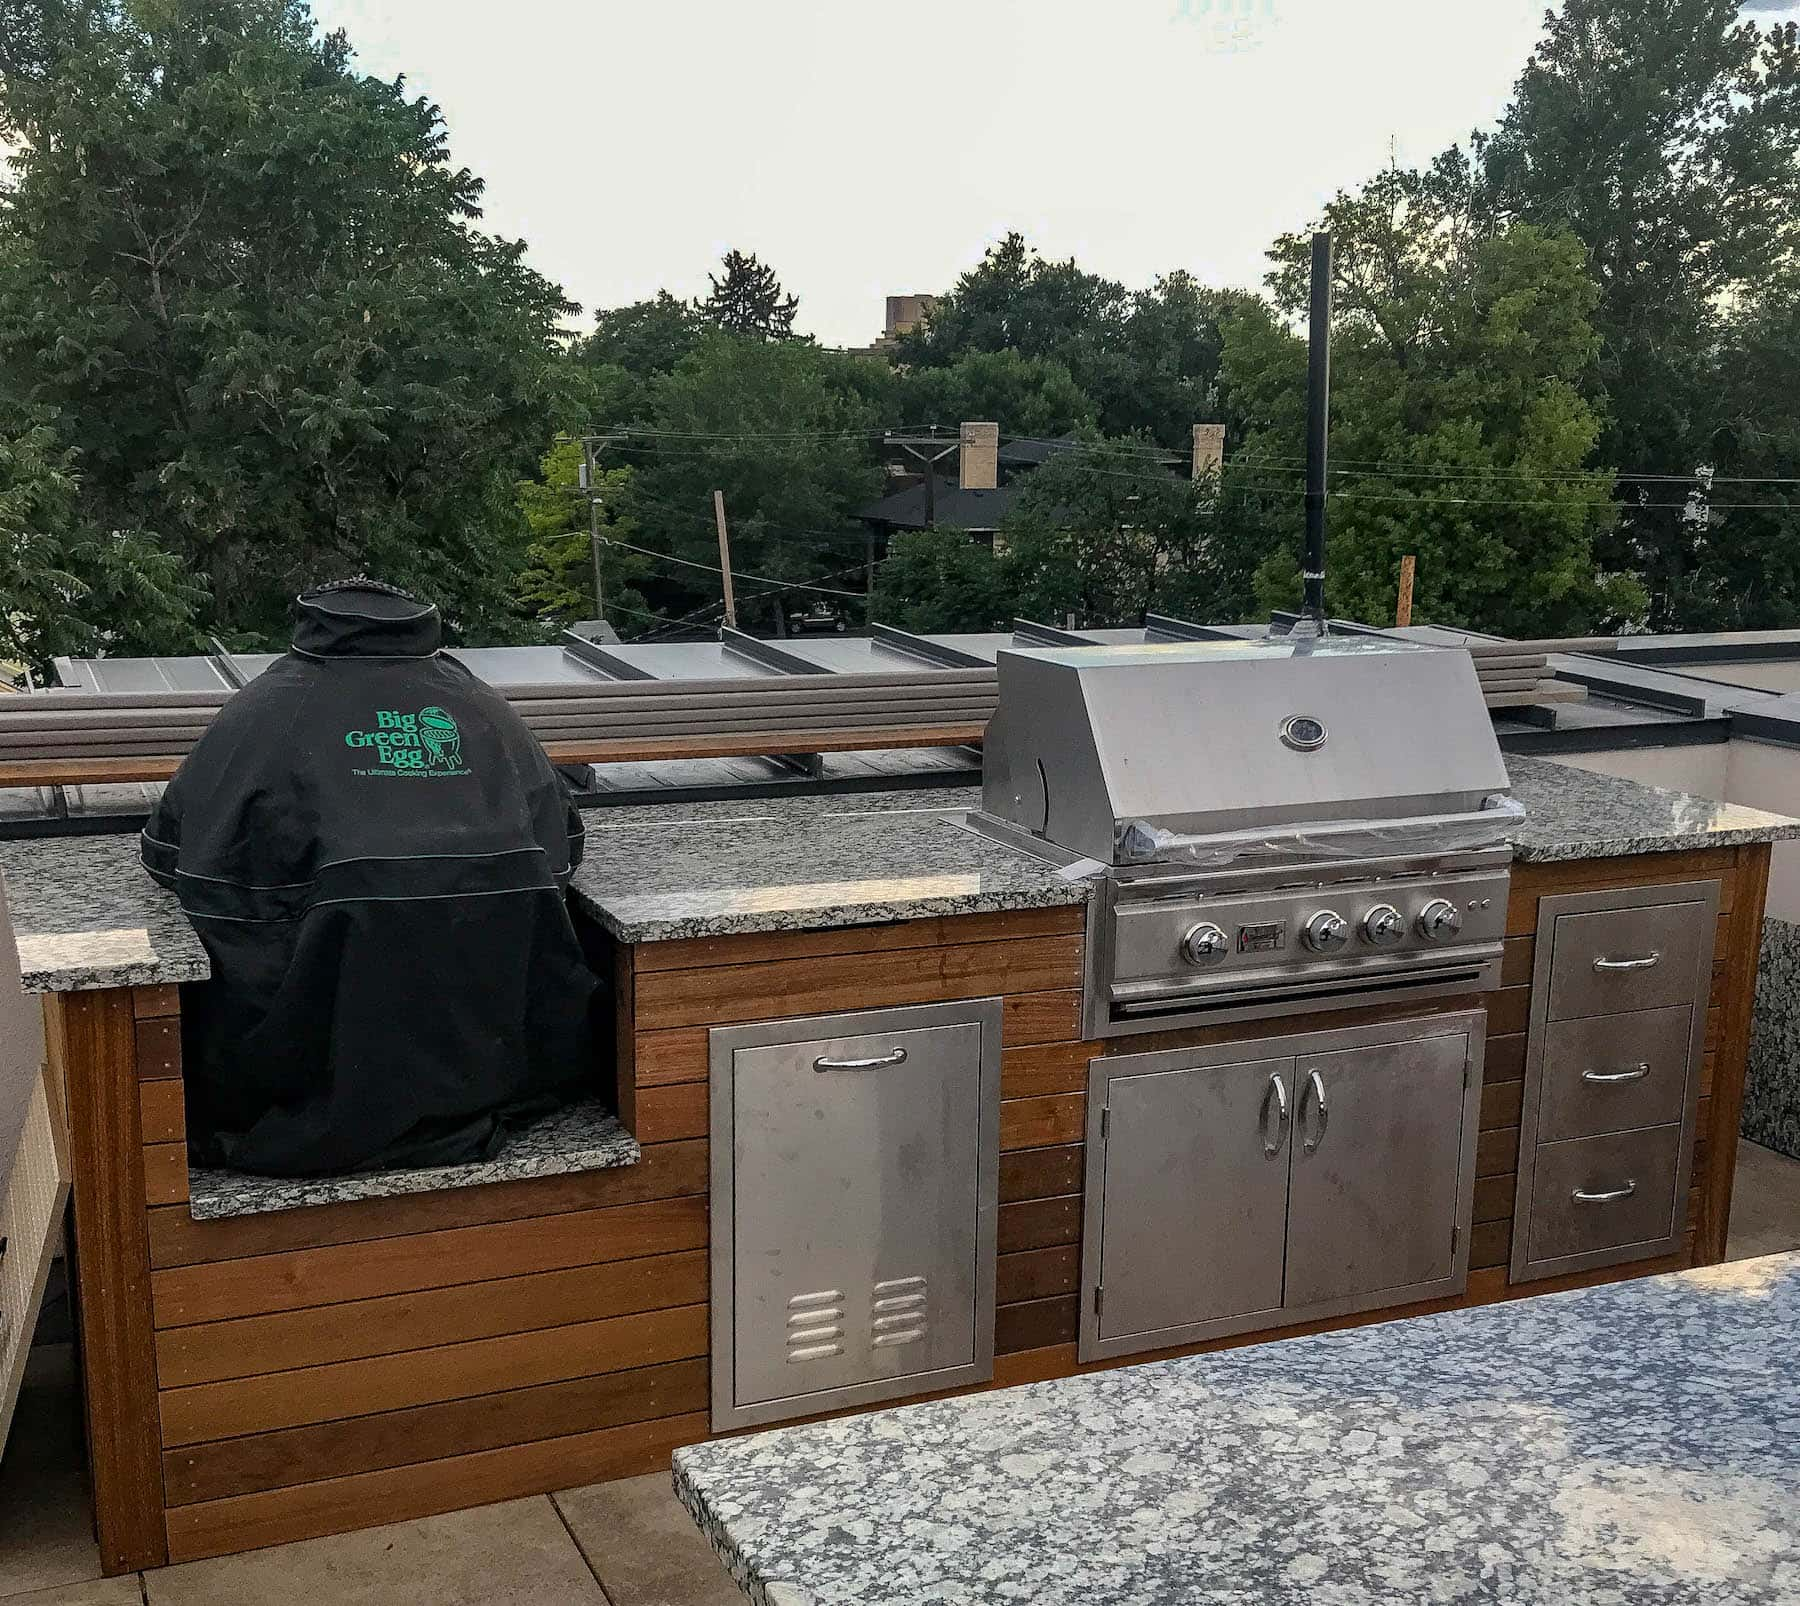 Outdoor Kitchen With Stainless Steel Appliances and Granite Countertops Rooftop DeckCity Park Denver CO